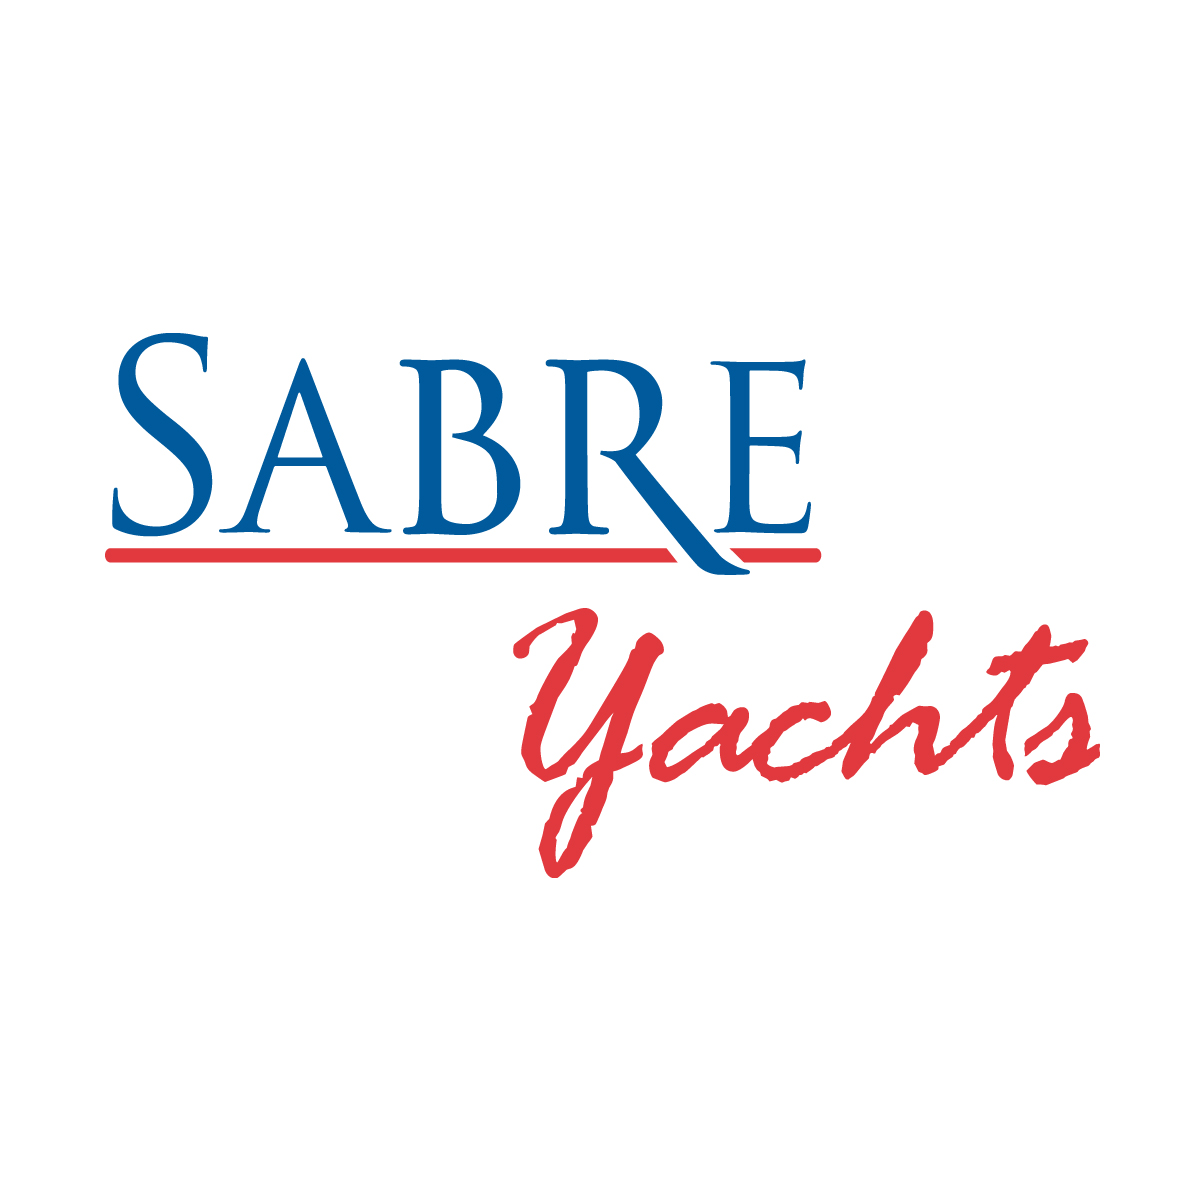 Sabre Yachts - Logo Added to Other Products